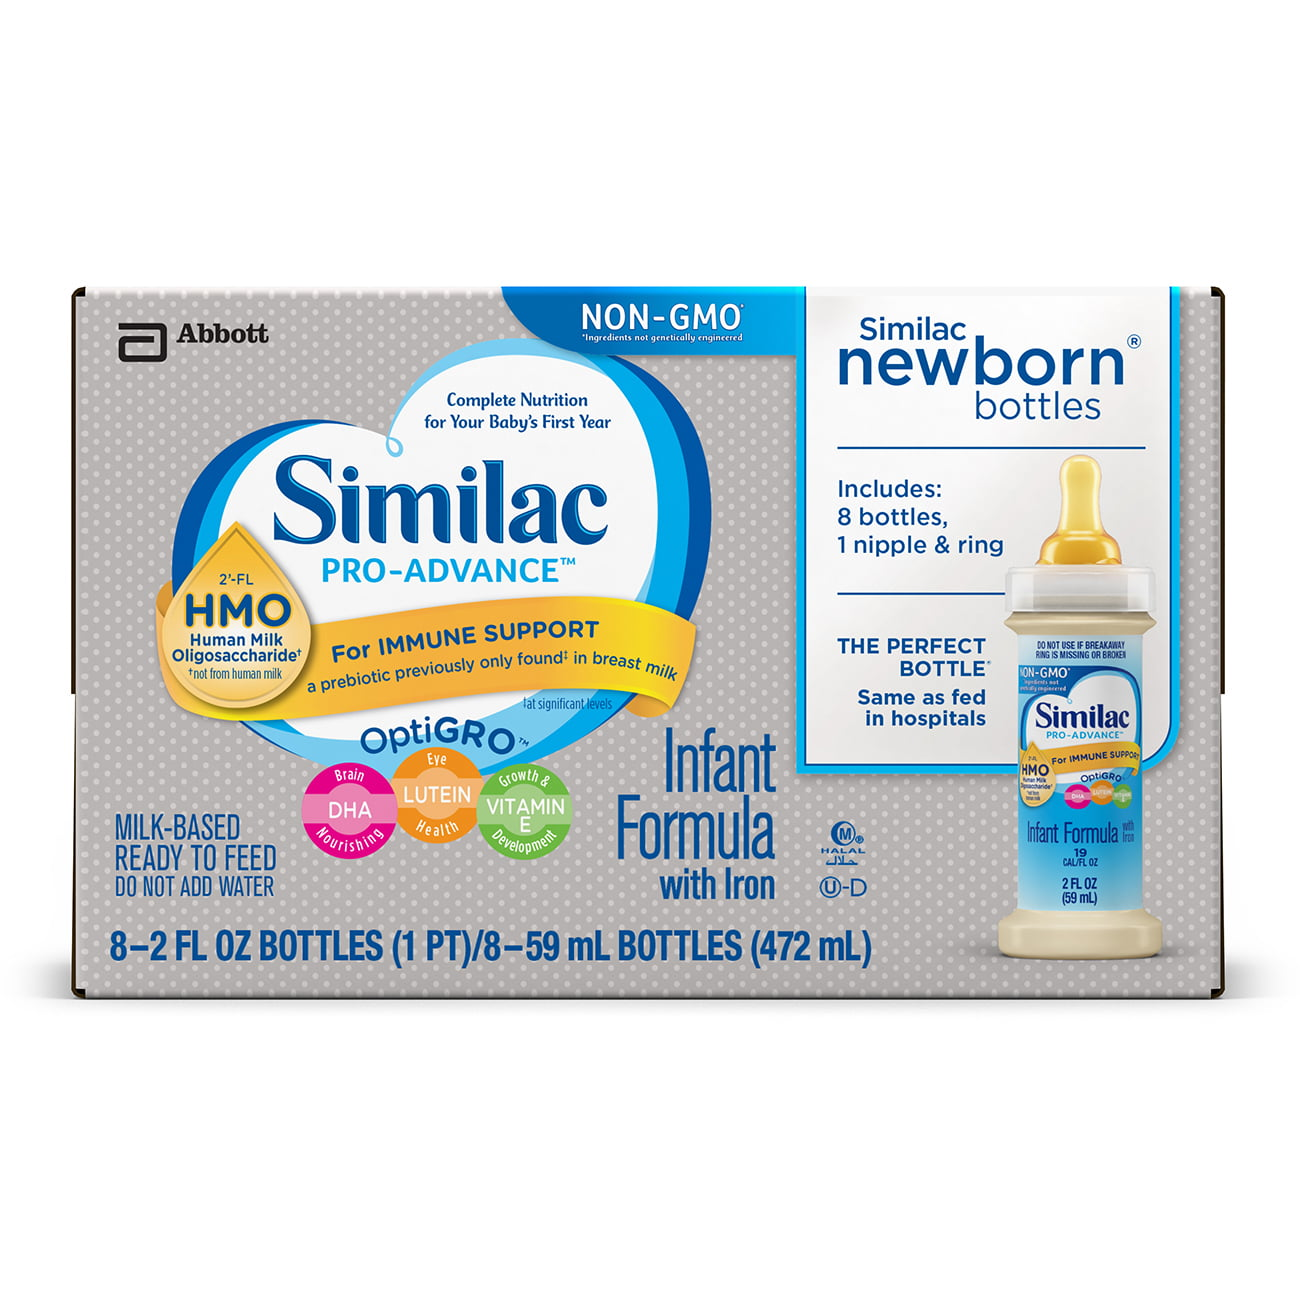 Similac Pro-Advance Formula w  2'-FL Human Milk Oligosaccharide (HMO) (48 Count) for Immune Support, Ready to... by Similac